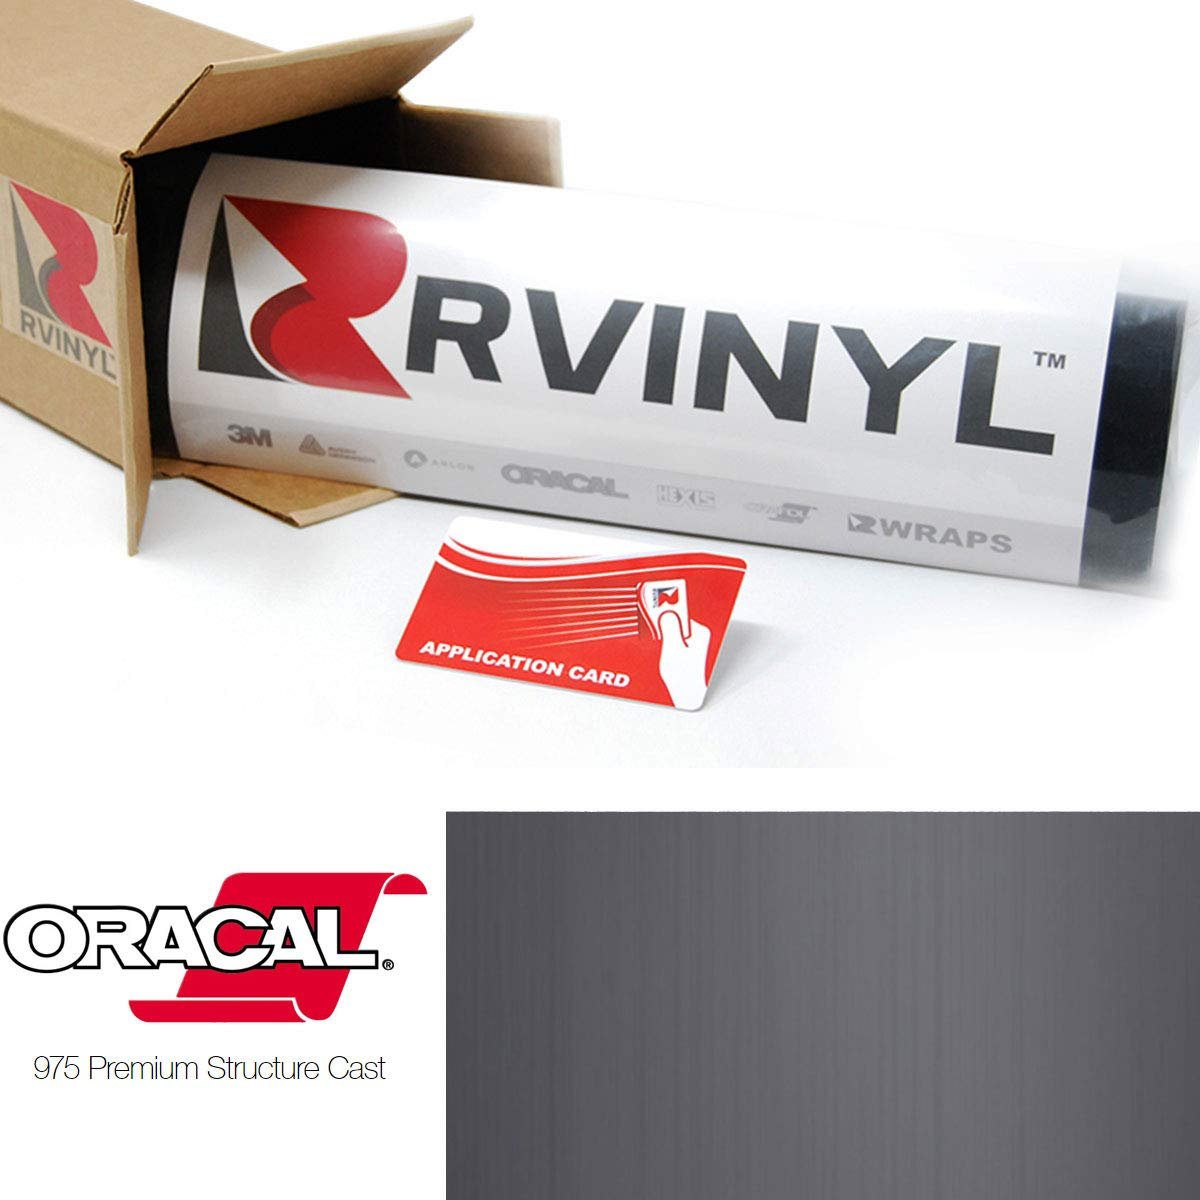 ORACAL 975 Brushed Aluminum Graphite 932-BA Wrapping Structure Cast Film Vehicle Car Wrap Vinyl Sheet Roll 1ft x 5ft w//App Card